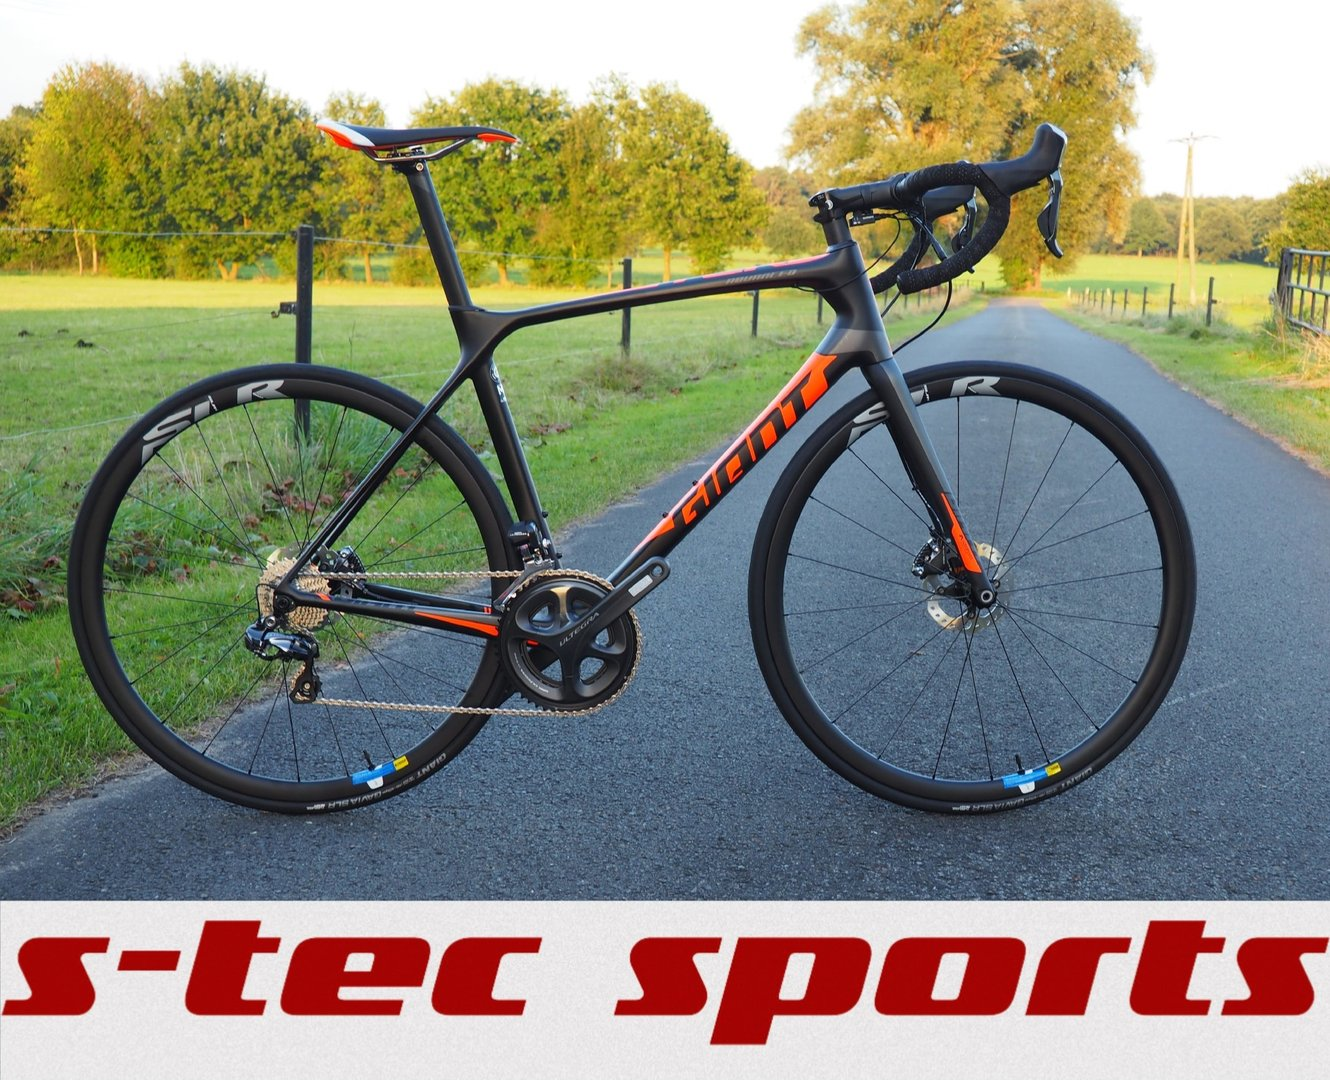 c1004fa0a8d Giant TCR Advanced Pro Disc 2017 - S-TEC sports